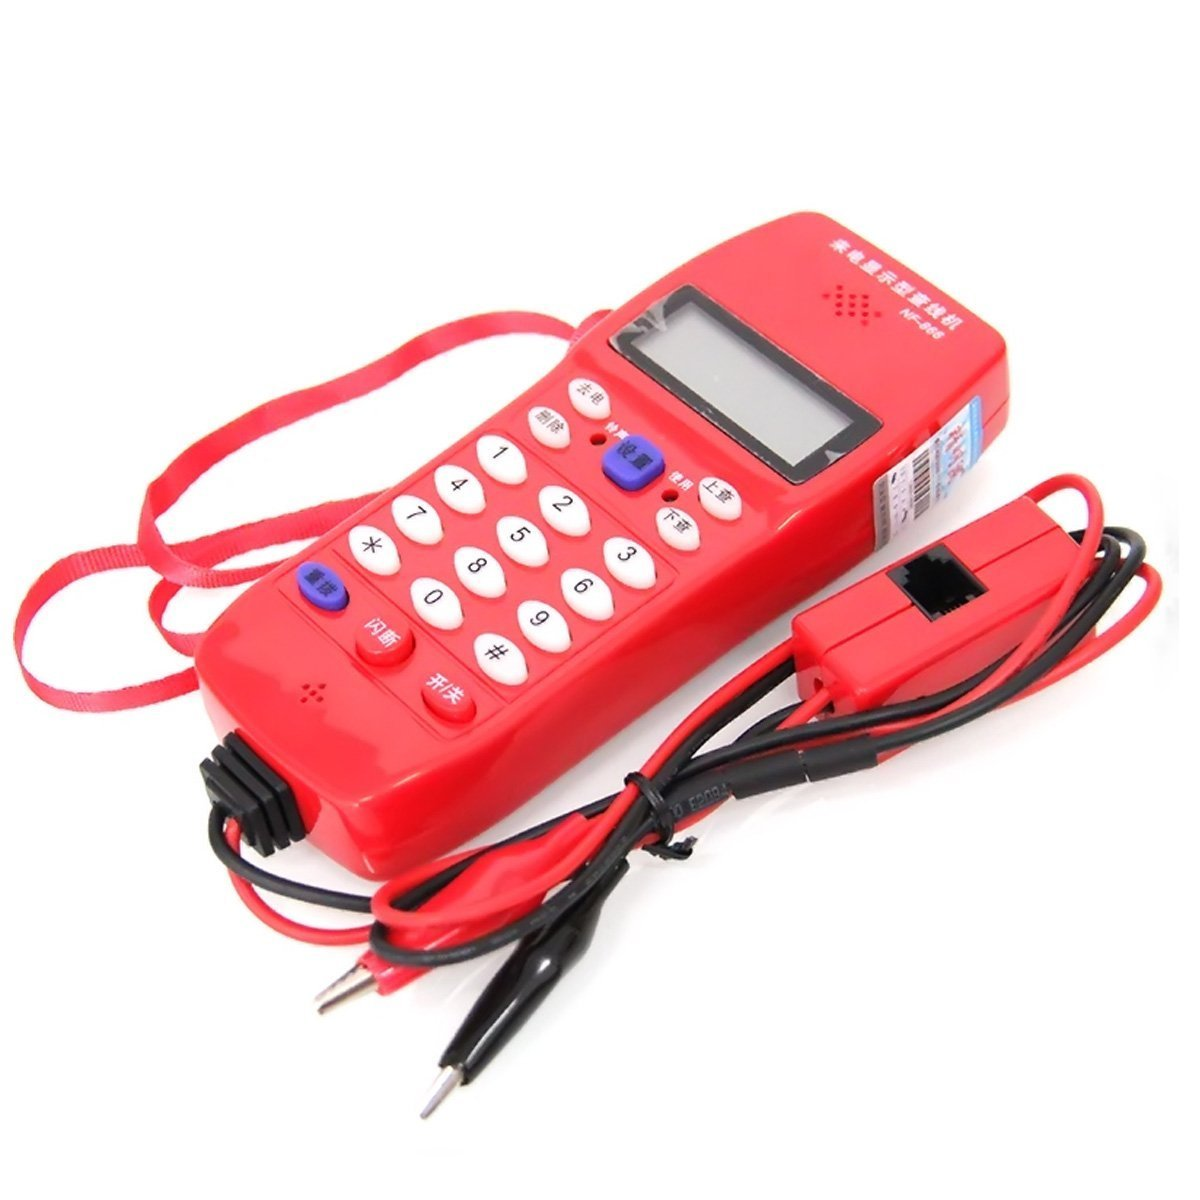 NF-866 Cable Tester Phone For Telephone Telecommunication, Check Phone DTMF Caller ID Auto Detection KLS